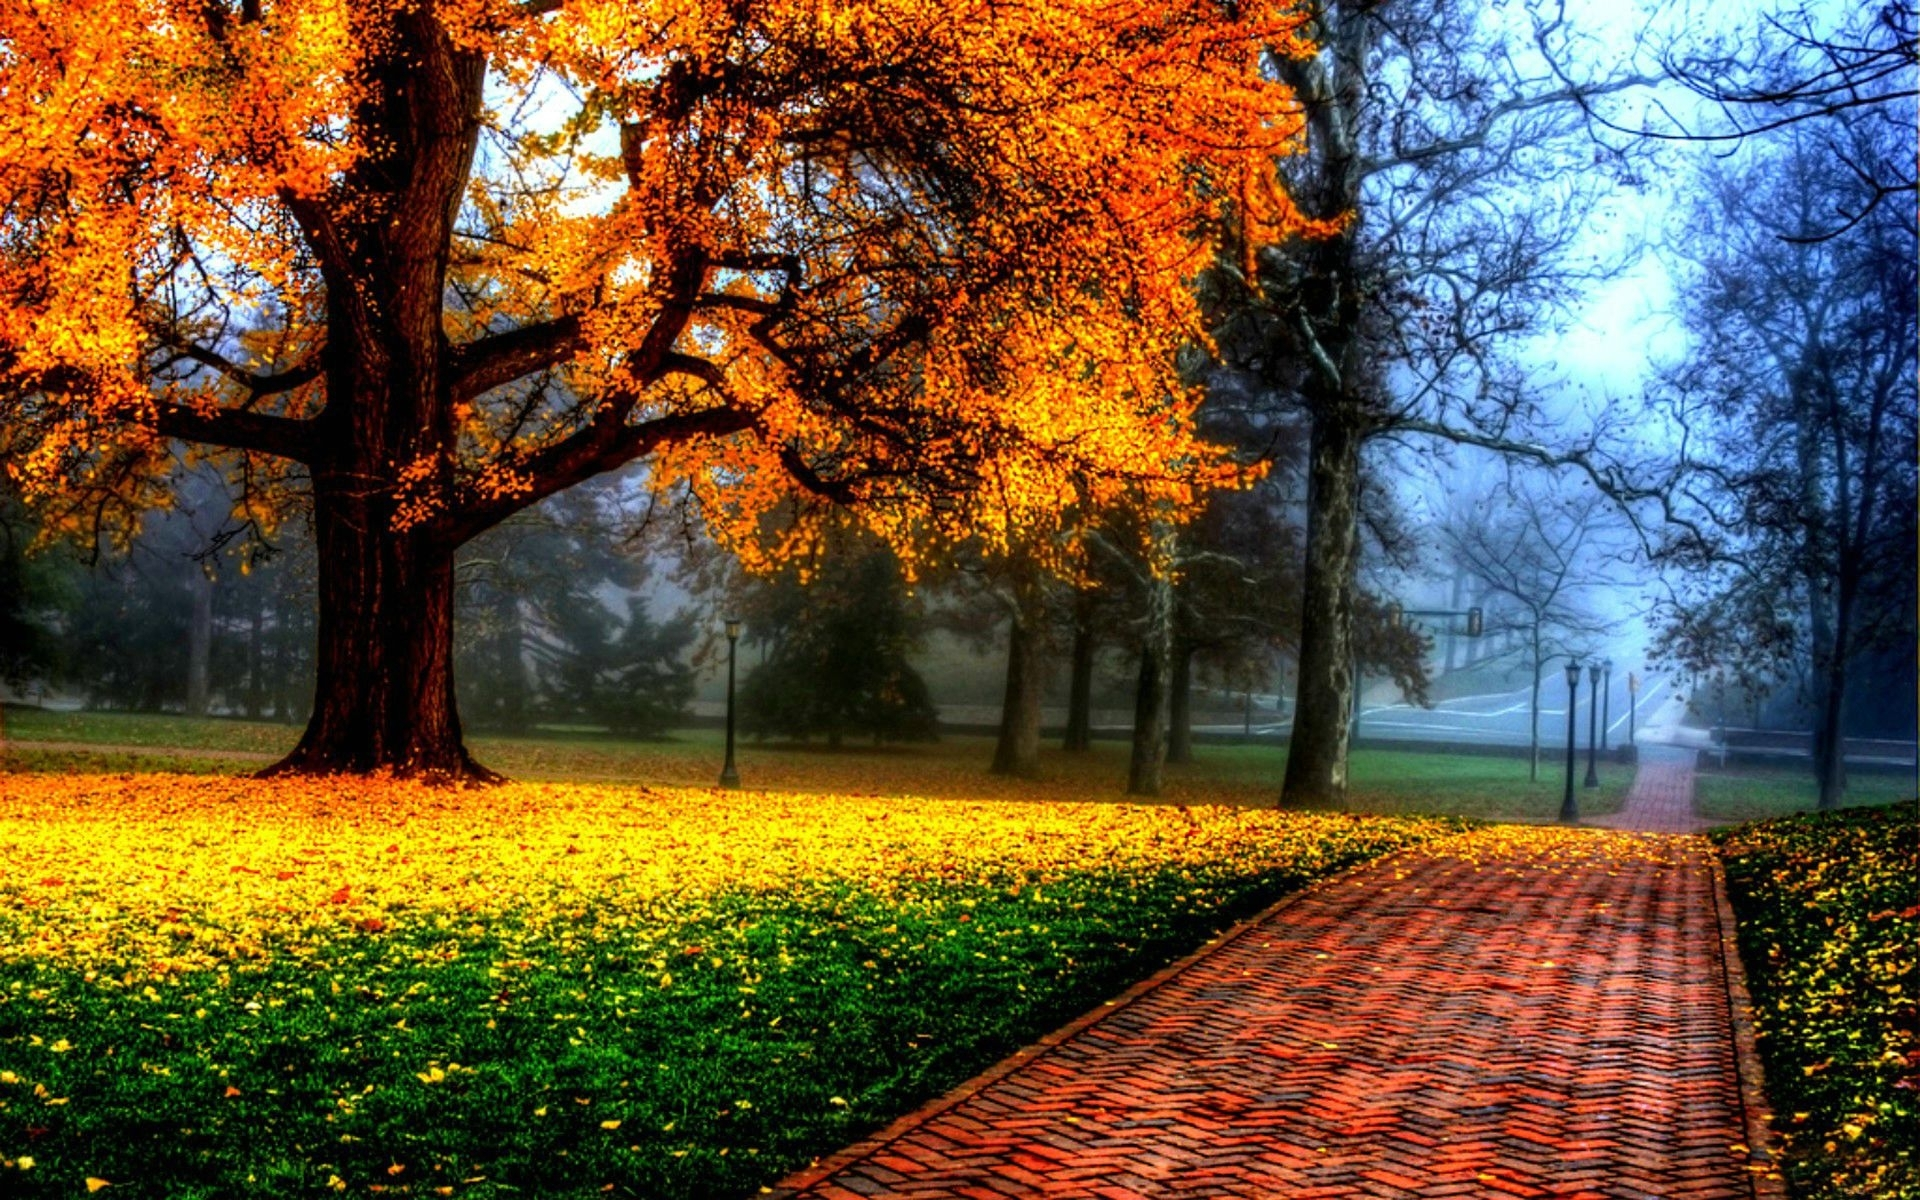 27963 download wallpaper Landscape, Trees, Autumn screensavers and pictures for free